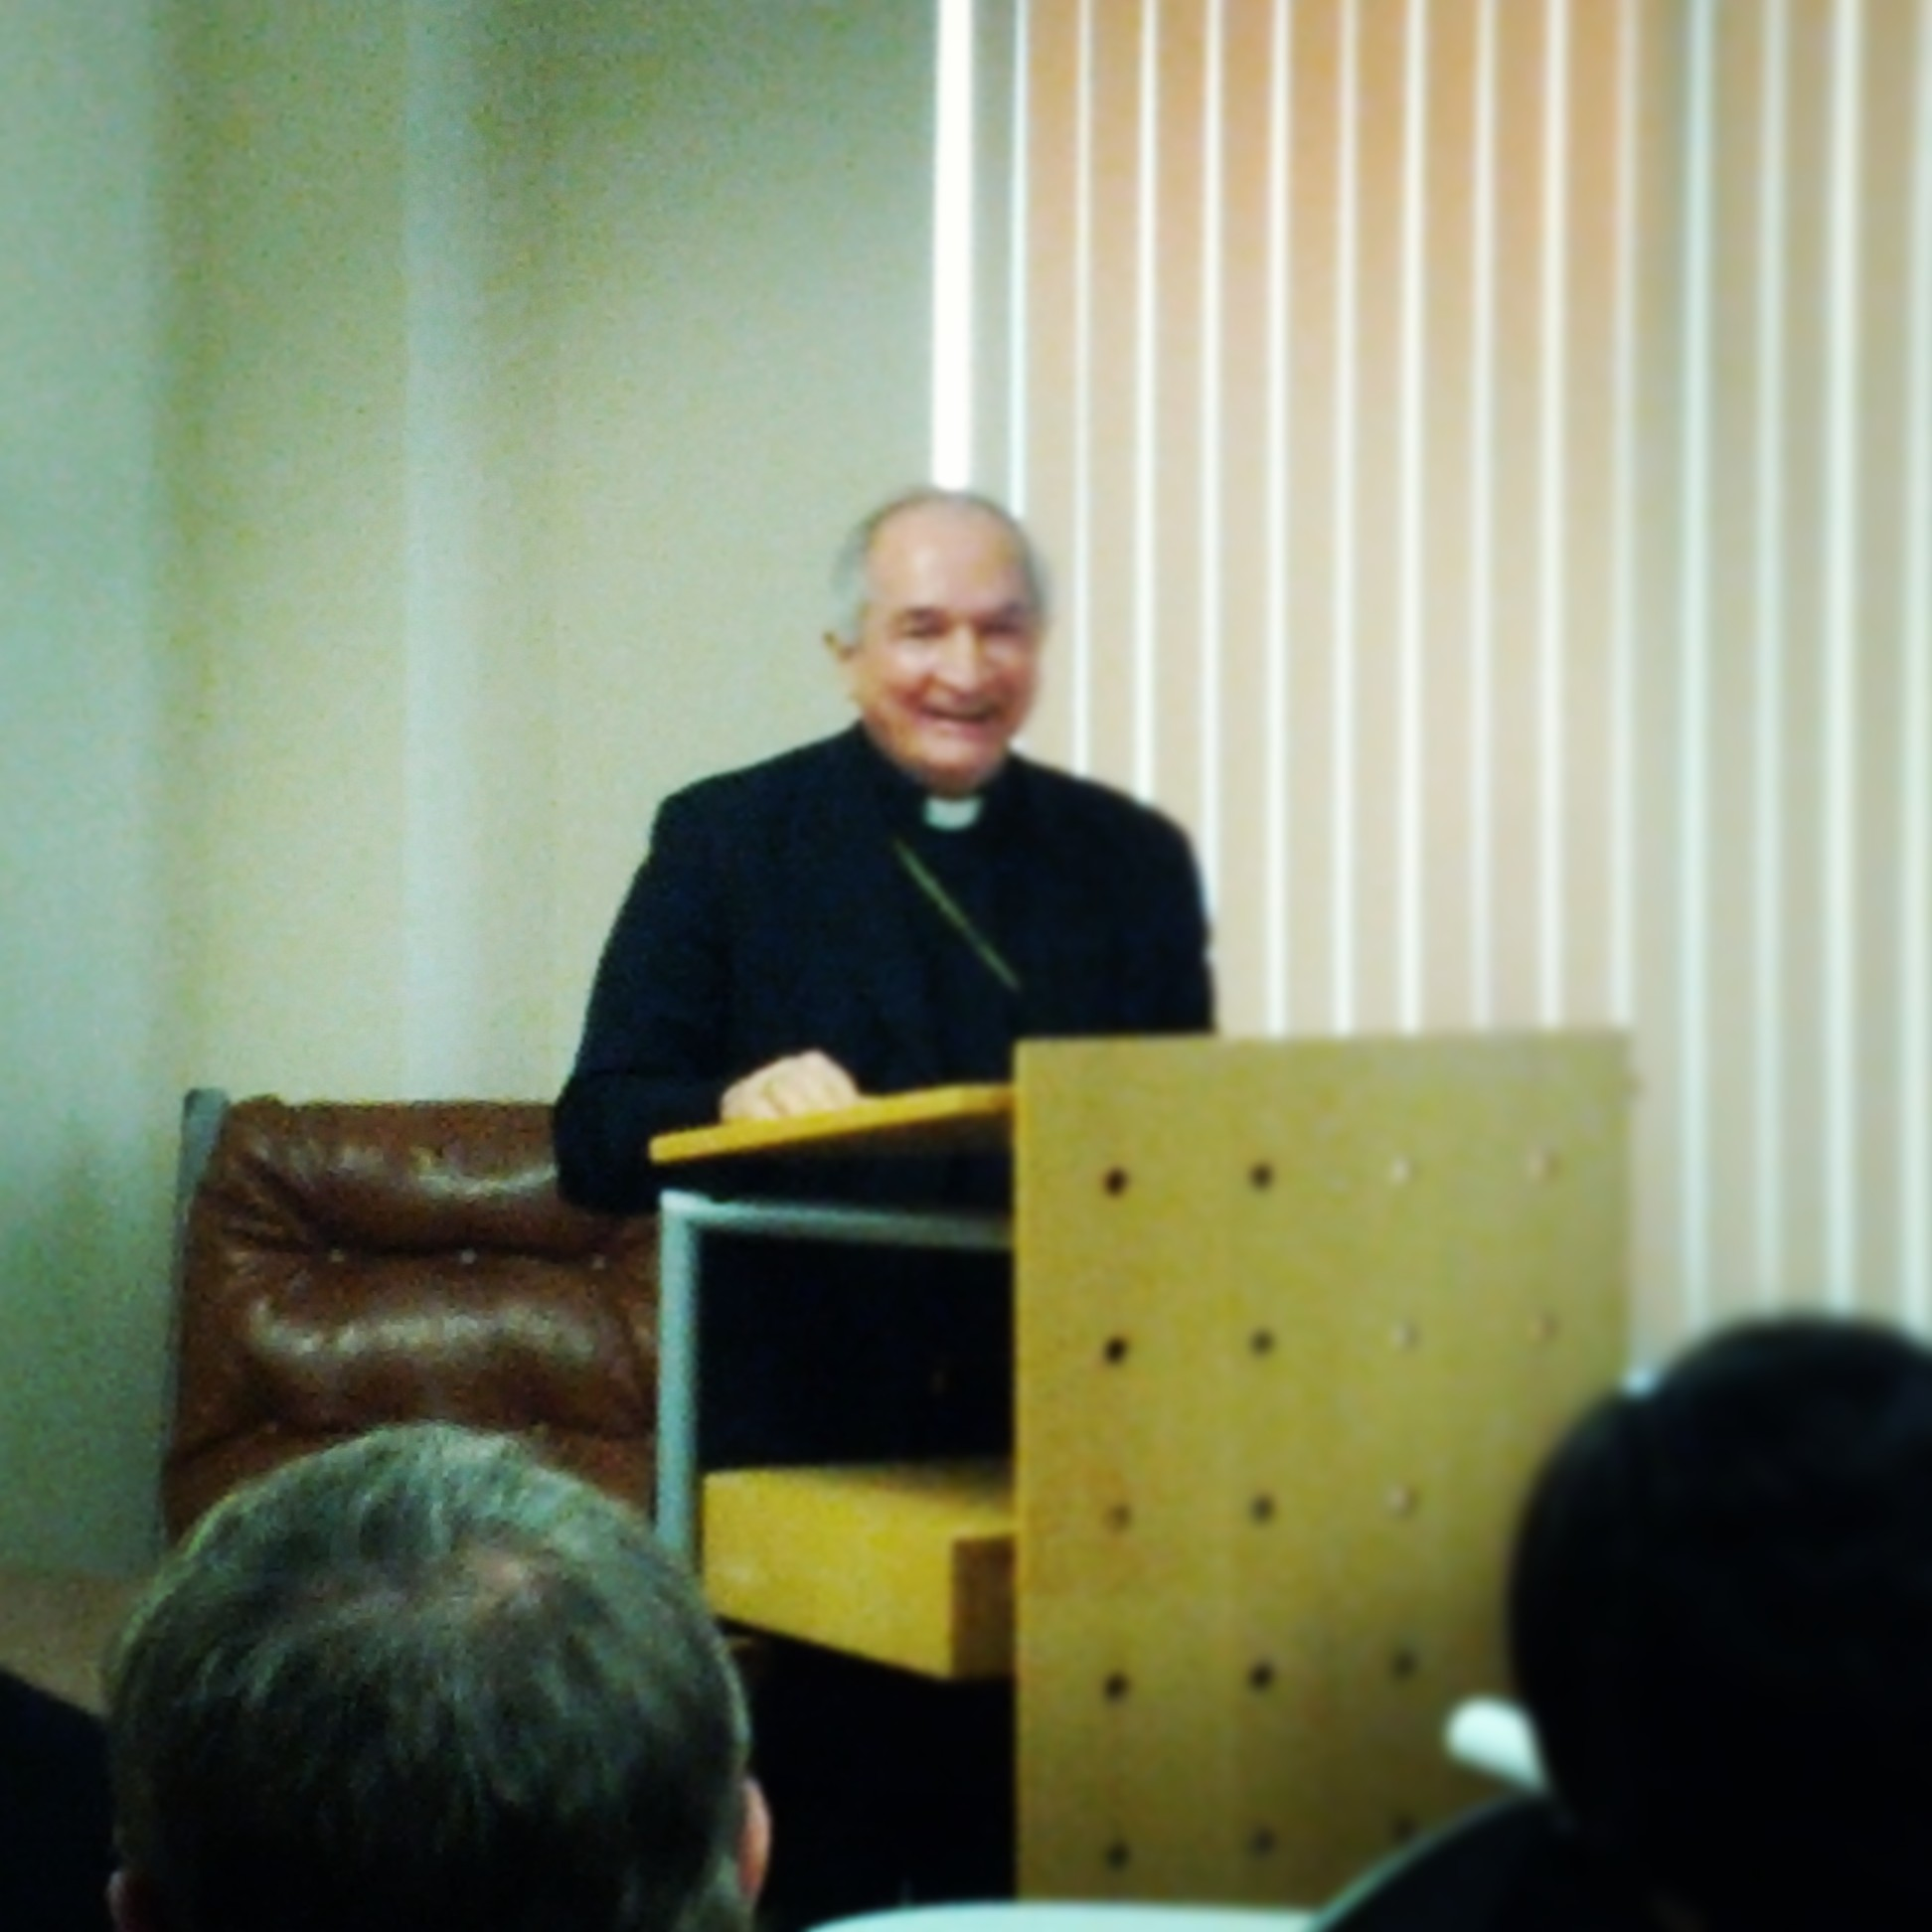 Immigration Reform Update: Archbishop Silvano Tomasi Addresses The 22nd Session Of